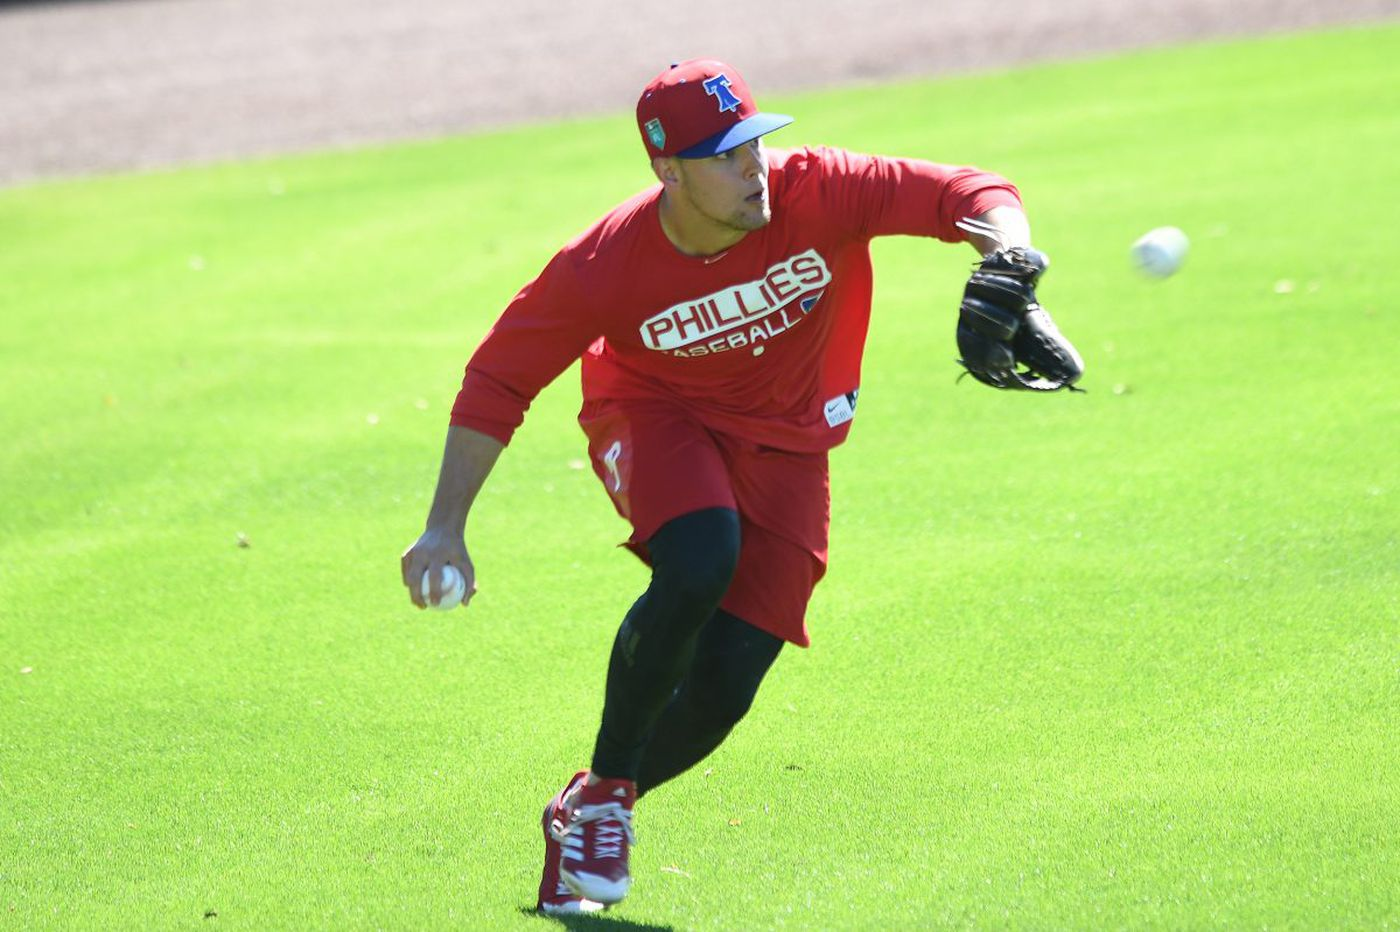 Keeping Scott Kingery in the minors is Phillies' best move | David Murphy